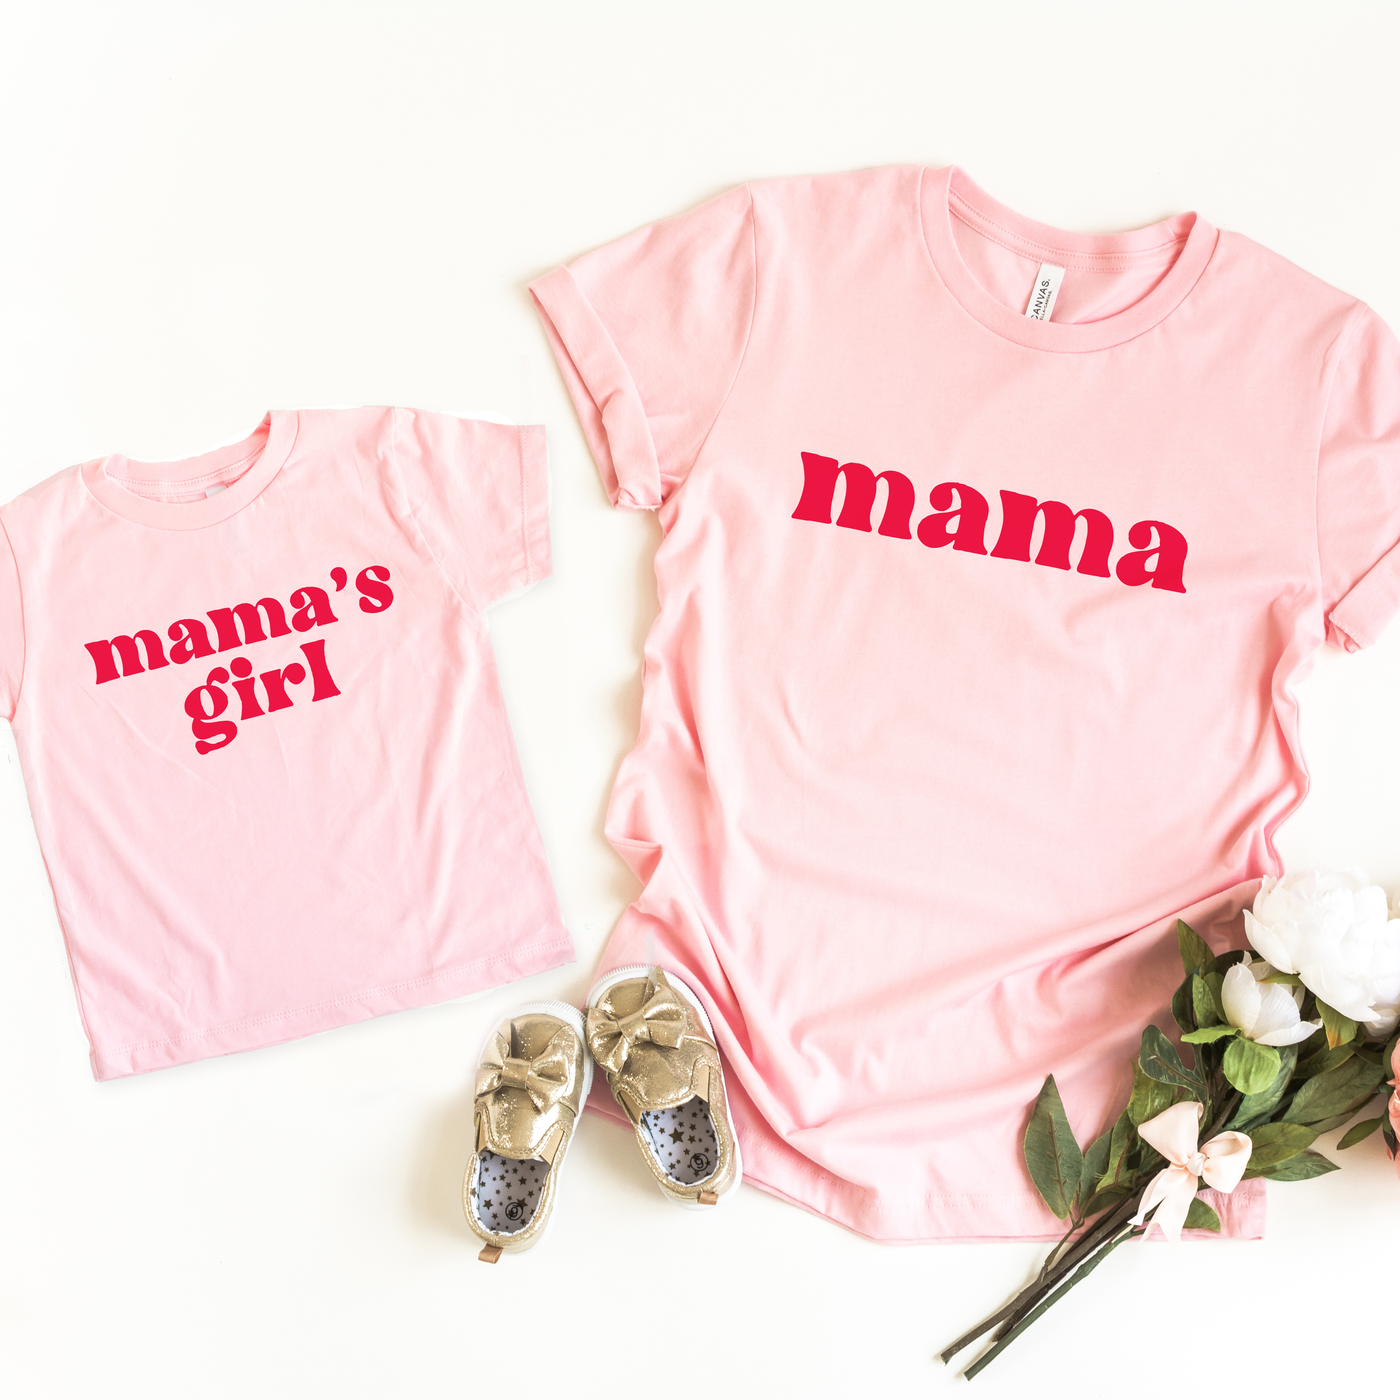 Mama & Mama's Girl Twinning T-shirt Set